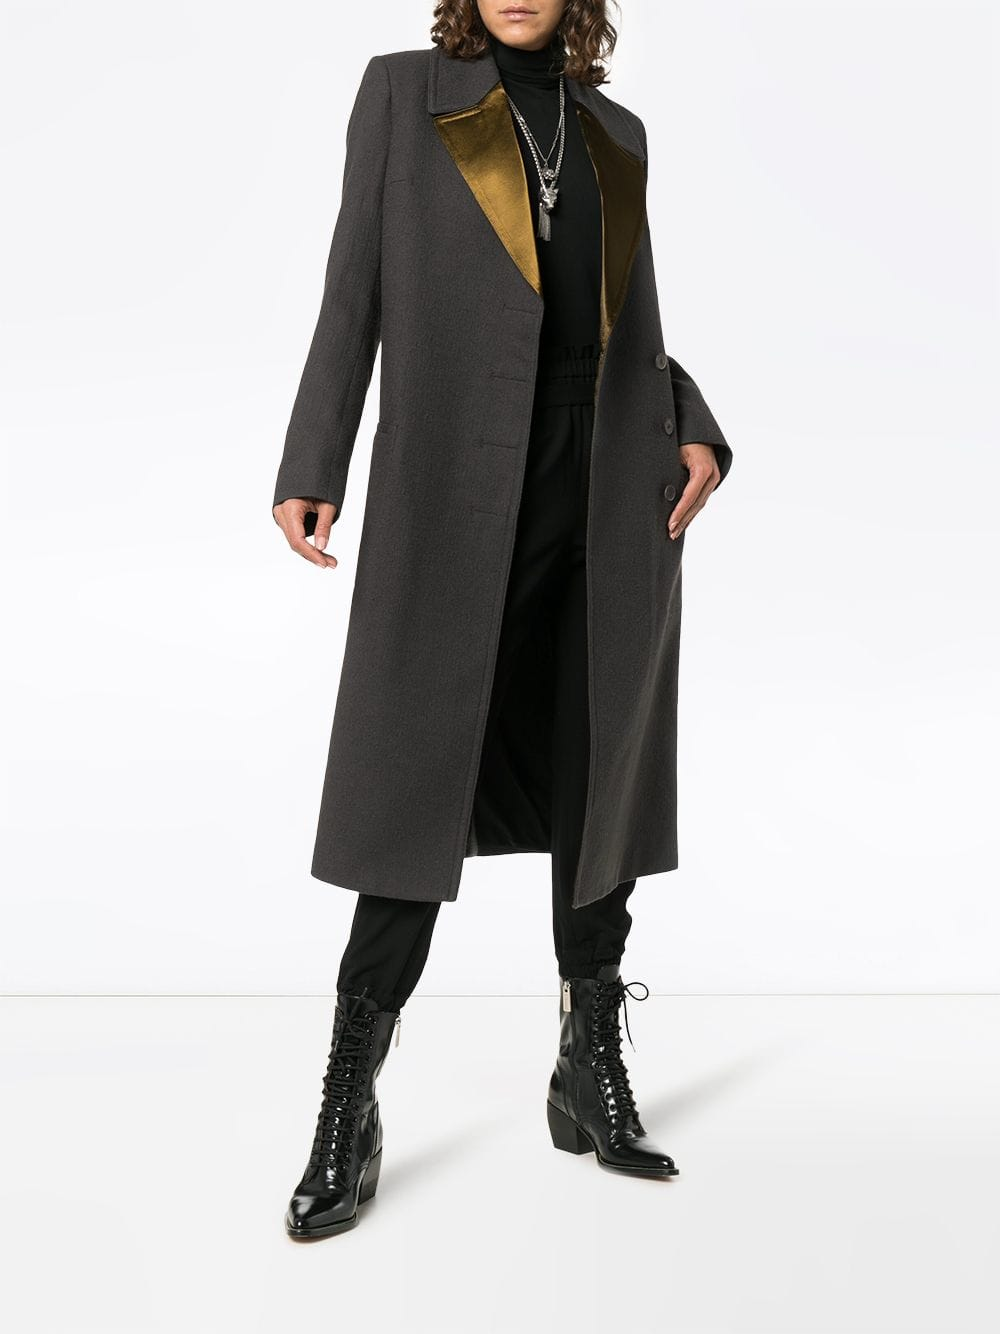 HAIDER ACKERMANN WOMEN LONG COAT